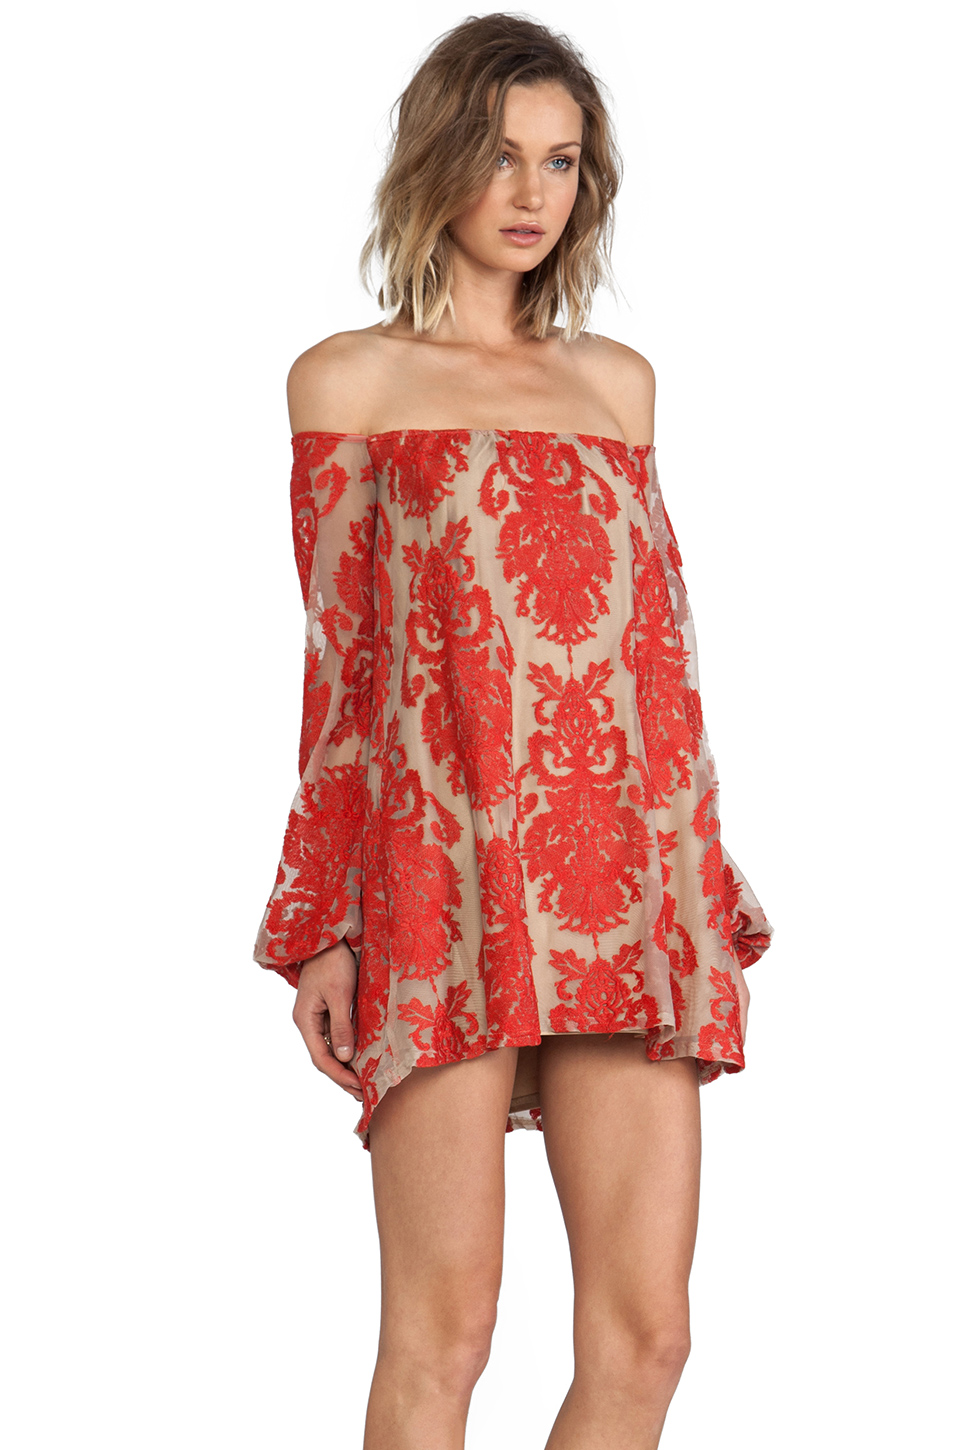 For Love & Lemons Precioso Mini Dress in Red | REVOLVE